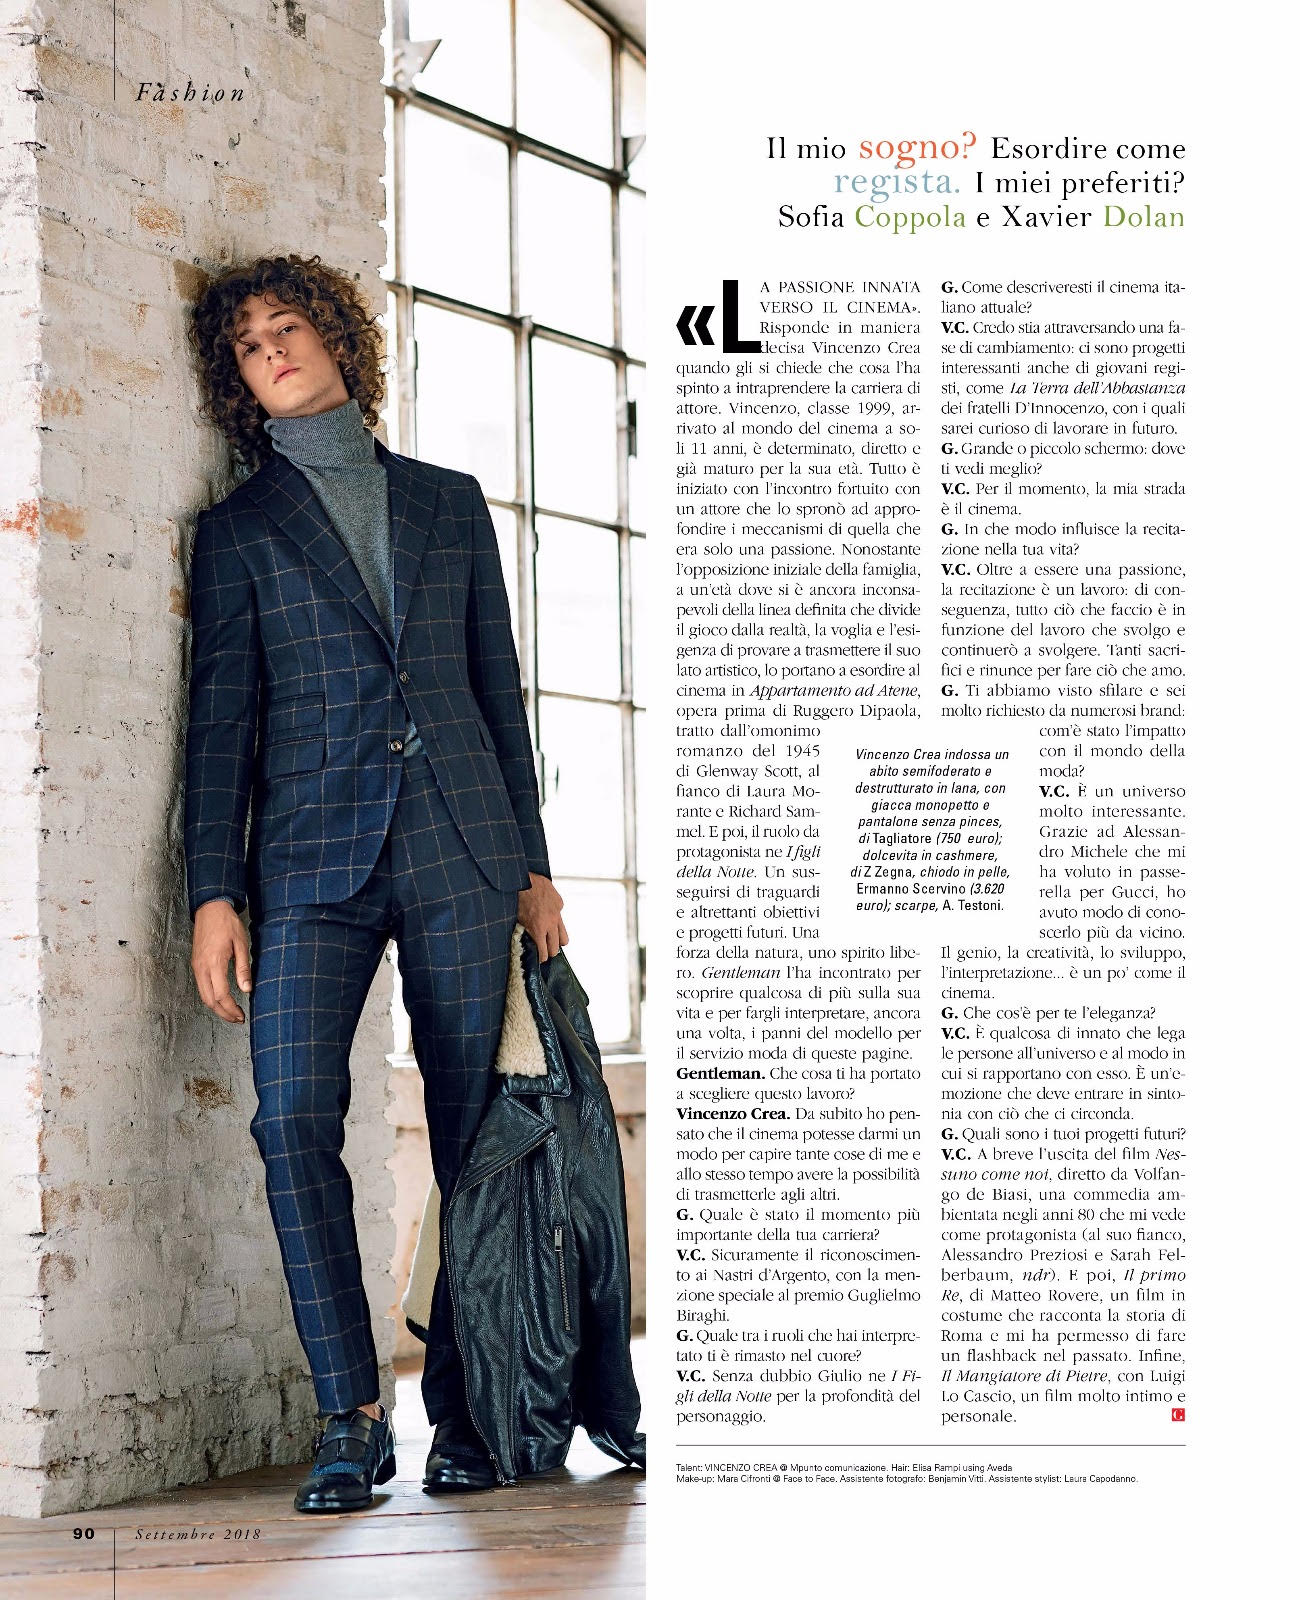 Gentleman Magazine Italia – Take it easy